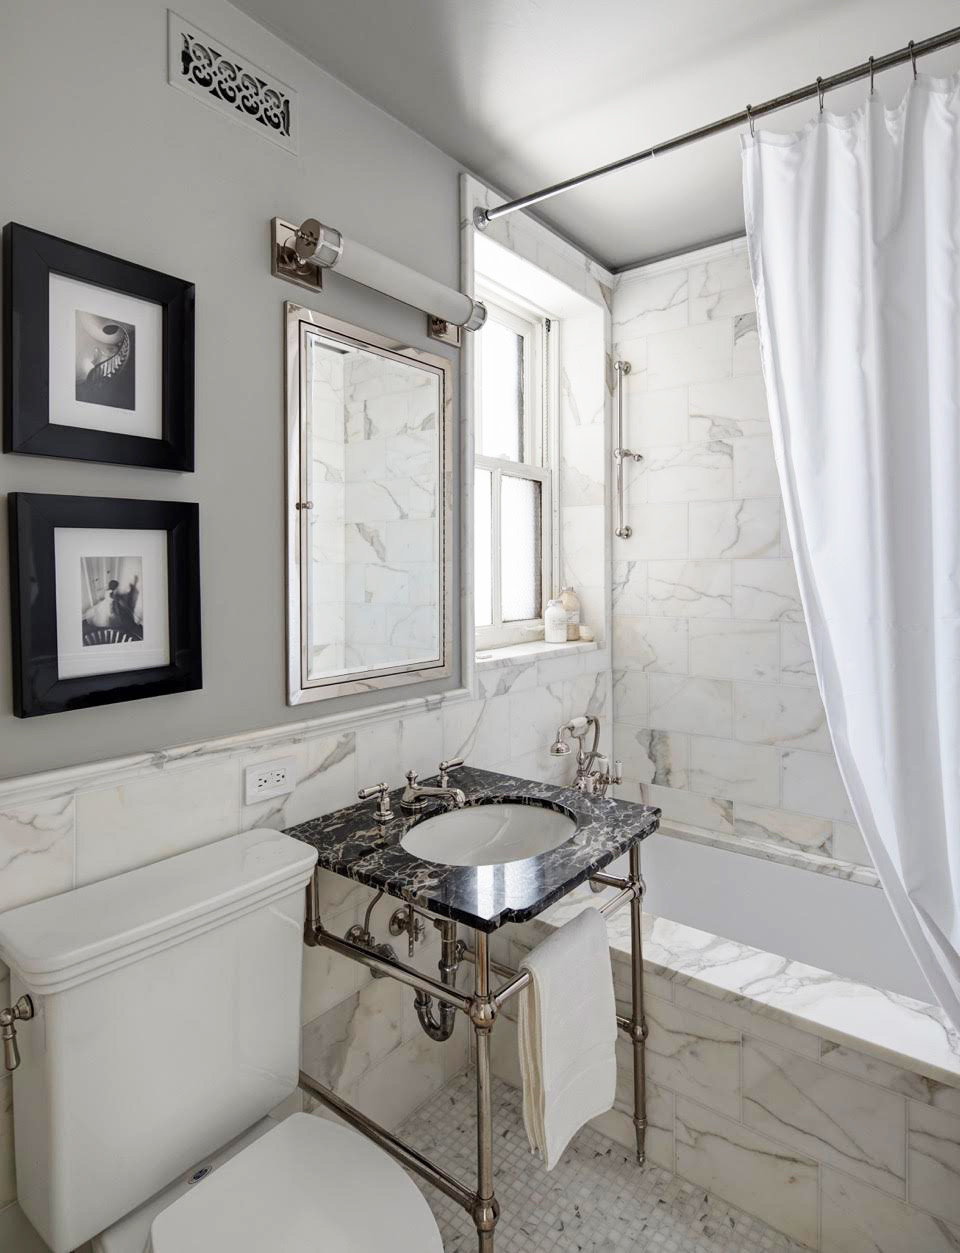 5 Tips From an Elegant, Small-Space Bathroom - Decorating ... on Space Bathroom  id=23893